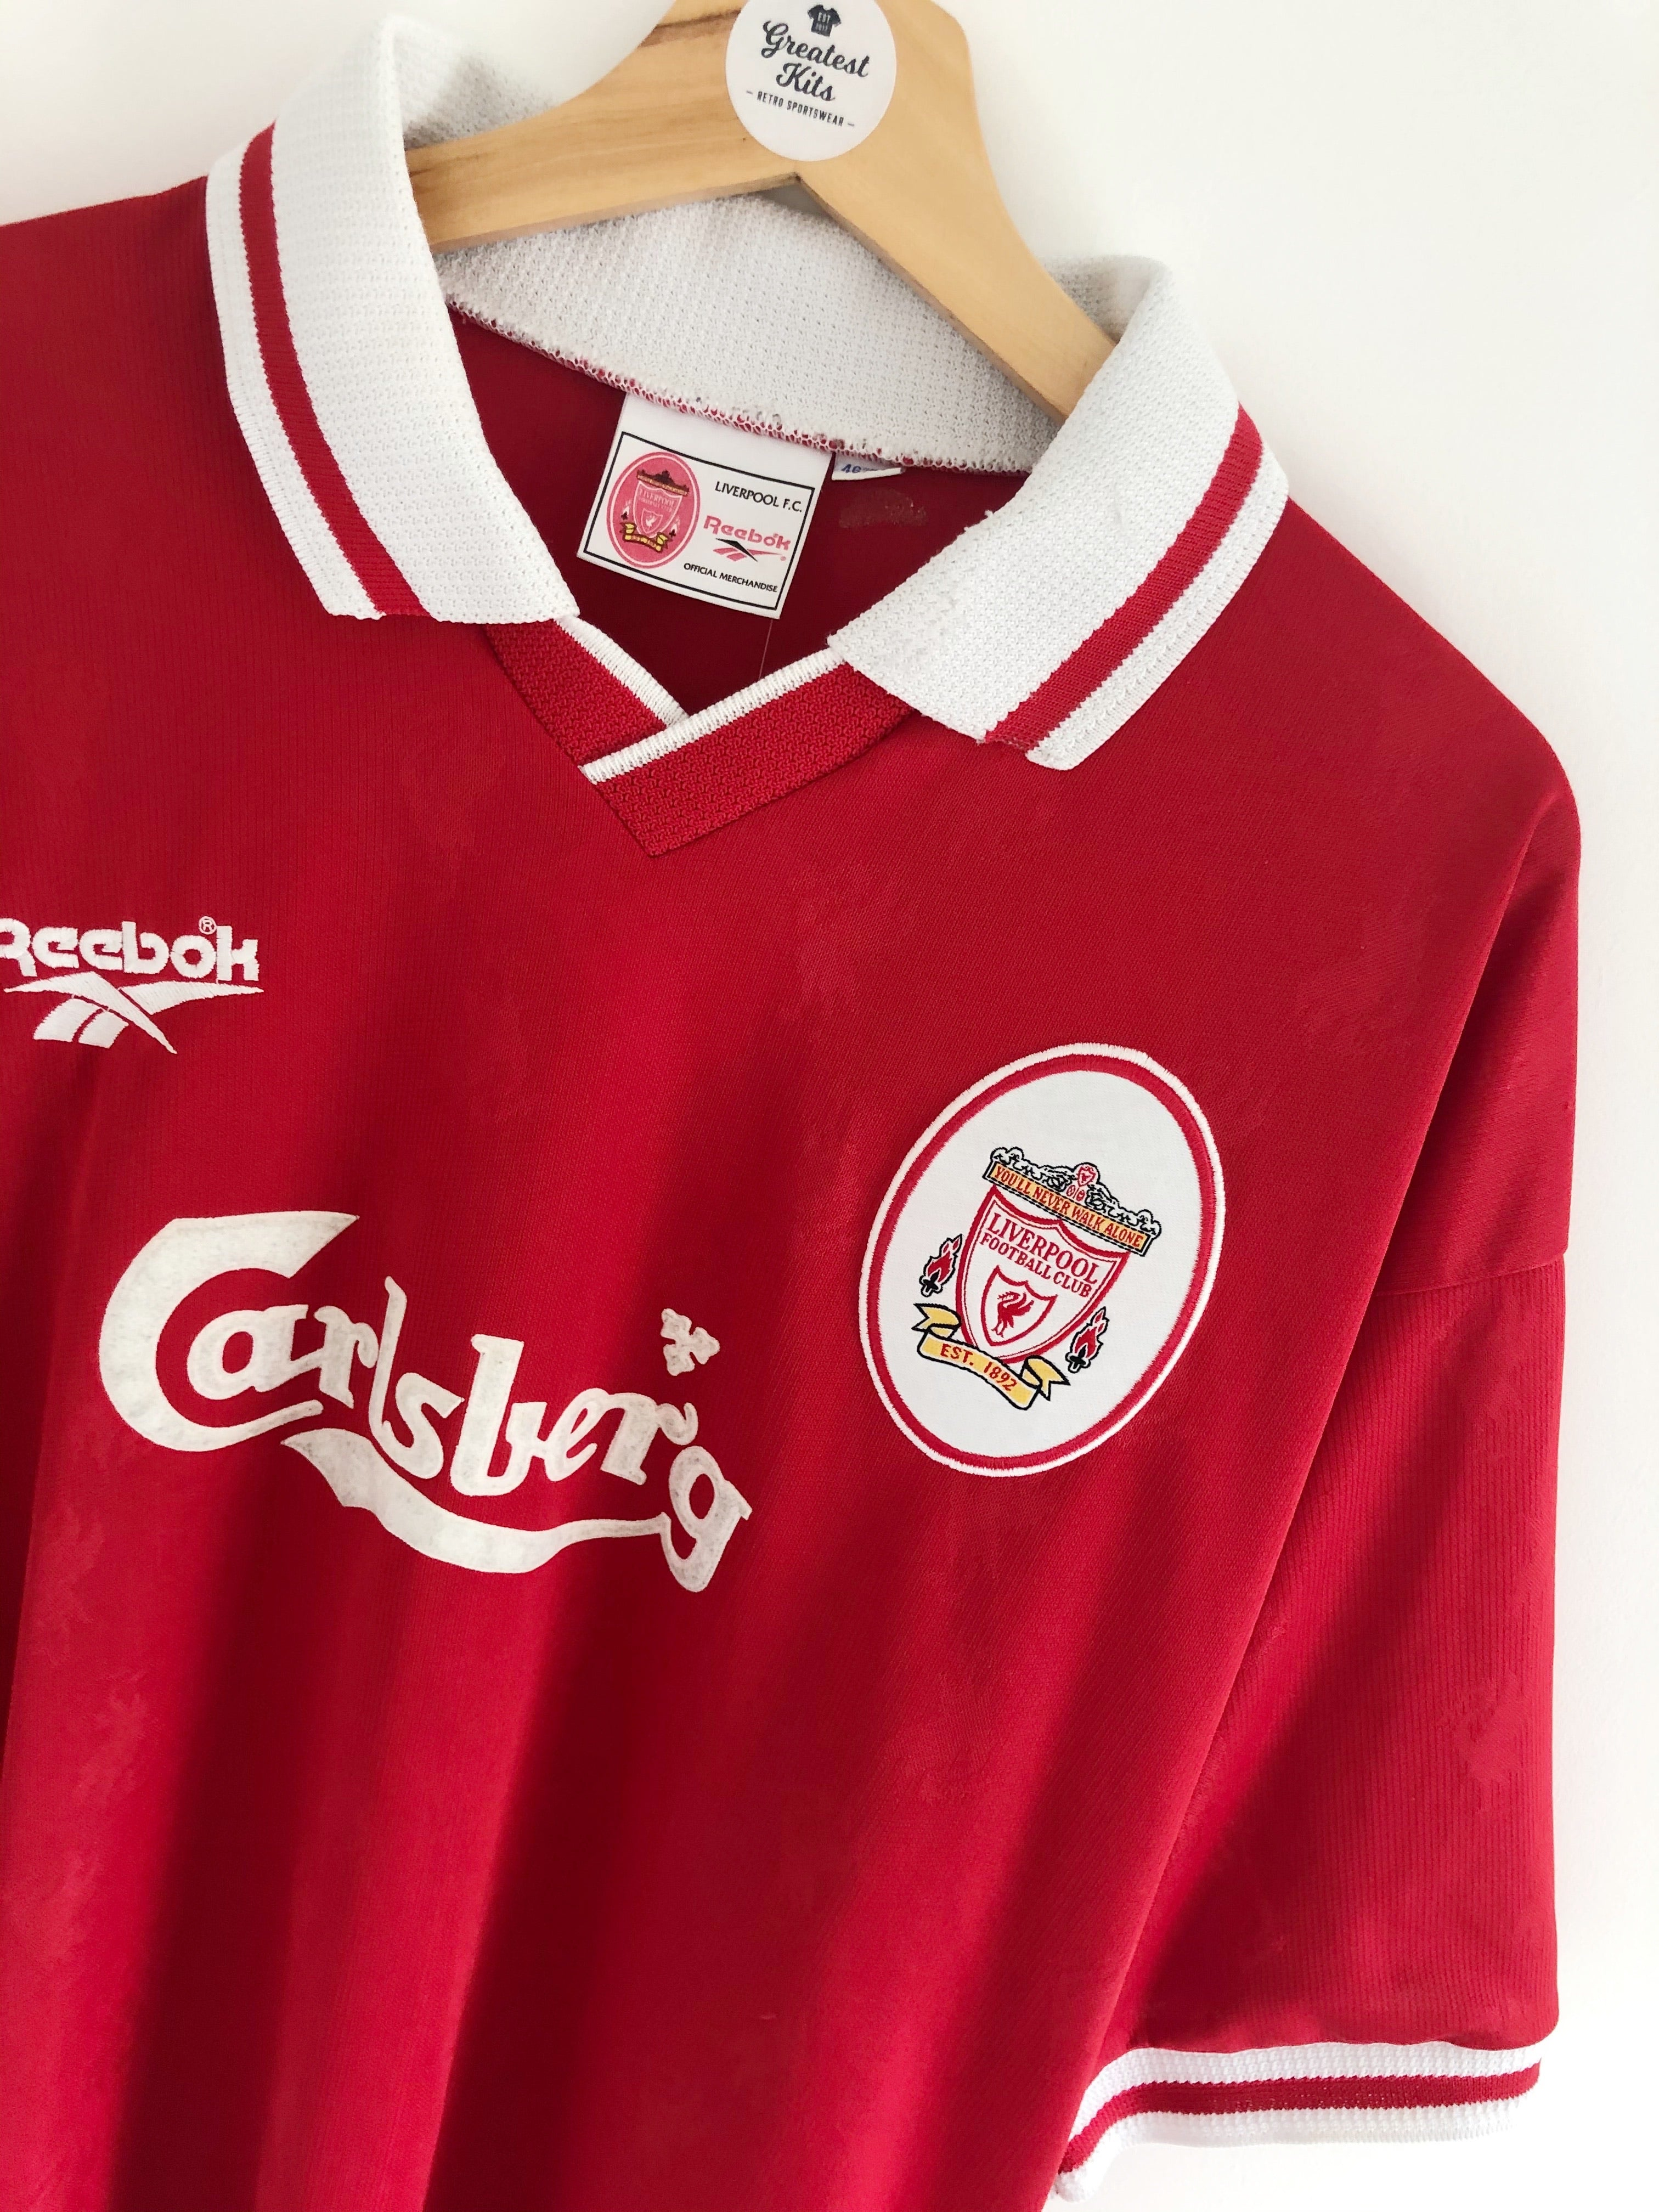 1996/98 Liverpool Home Shirt (XL) 9/10